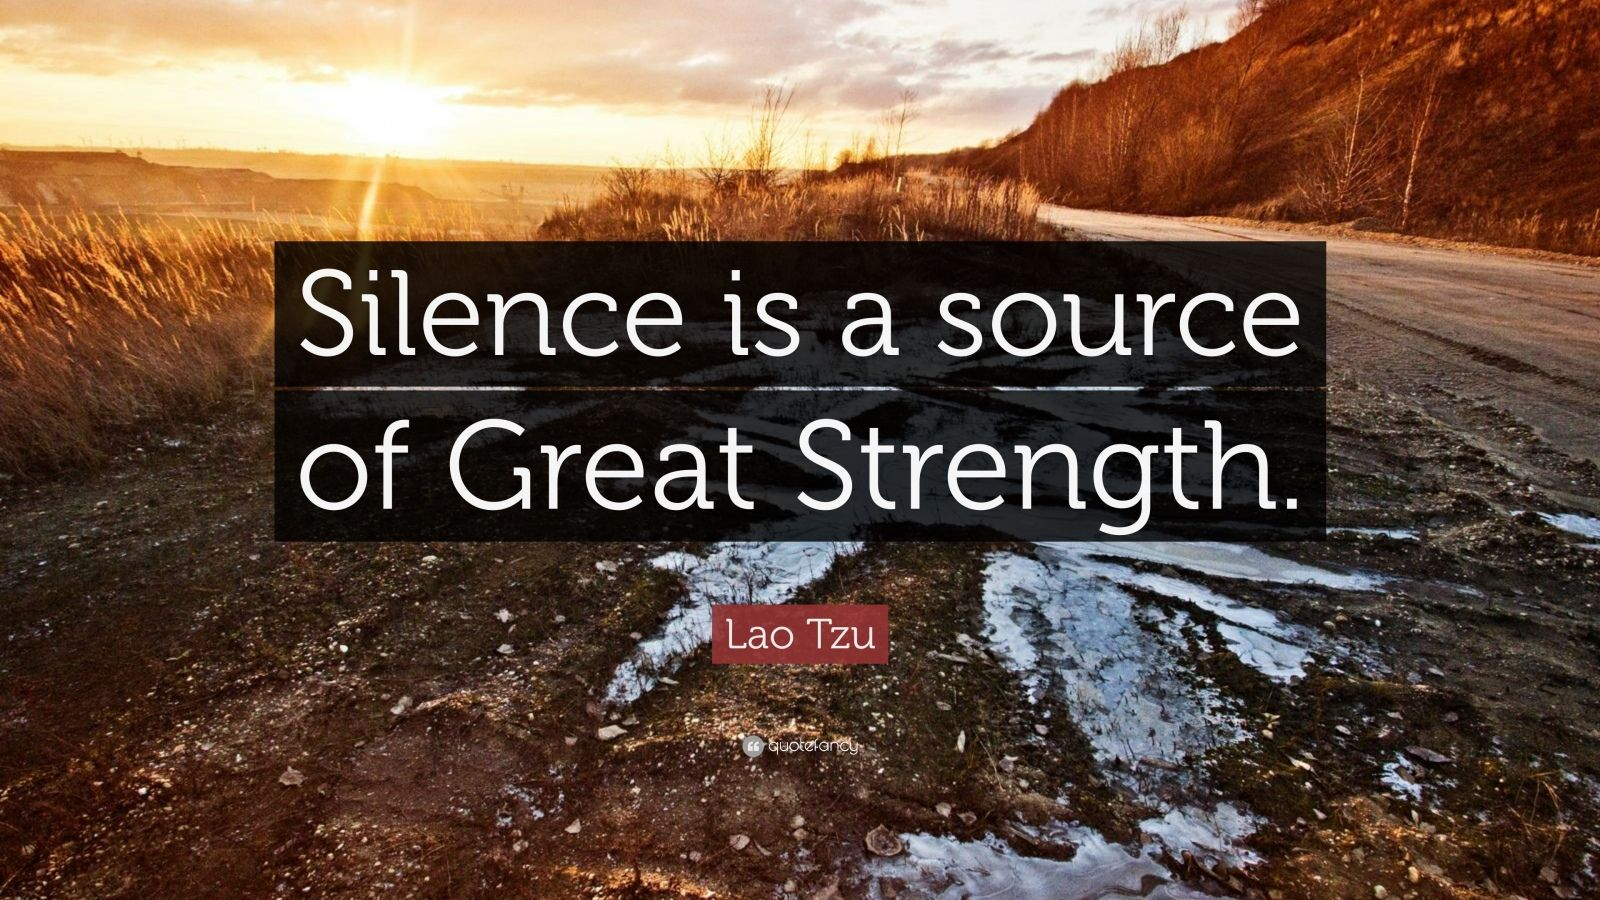 Lao Tzu Silence Is the Source of Great Strength